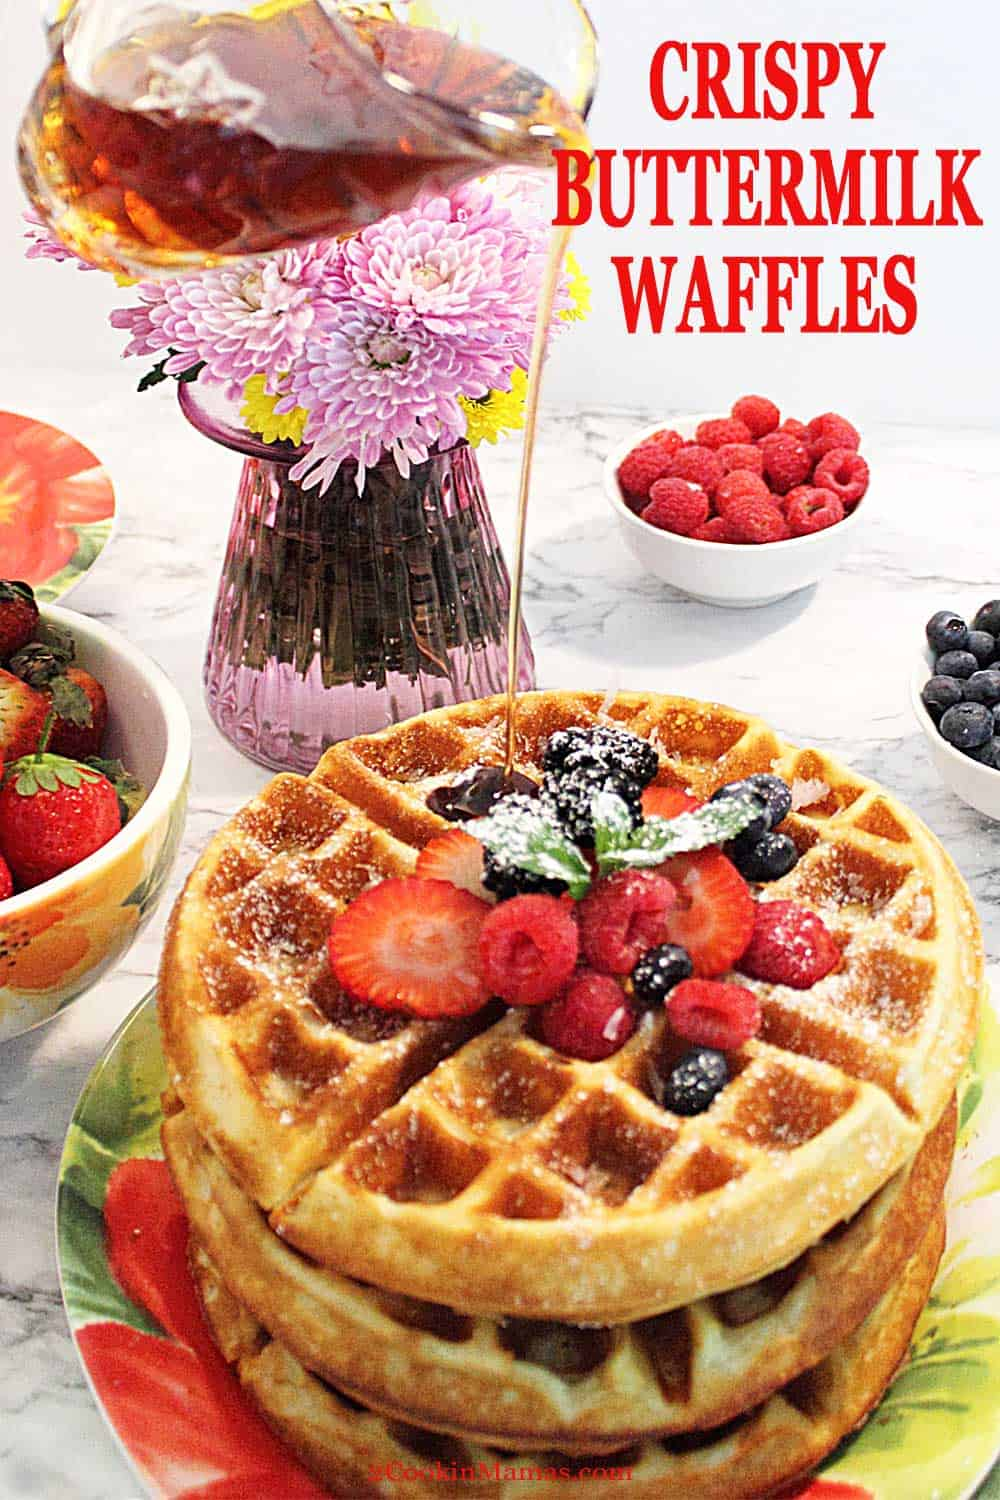 Find out the secret ingredient and trick that makes these waffles the best you\'ve ever had! The perfect waffles - crunchy on the outside, soft on the inside and super delicious! Great for weekend mornings and special enough for Mother\'s Day and Father\'s Day. #waffles #breakfast #recipe #easy #buttermilk #mothersday #fathersday #brunch